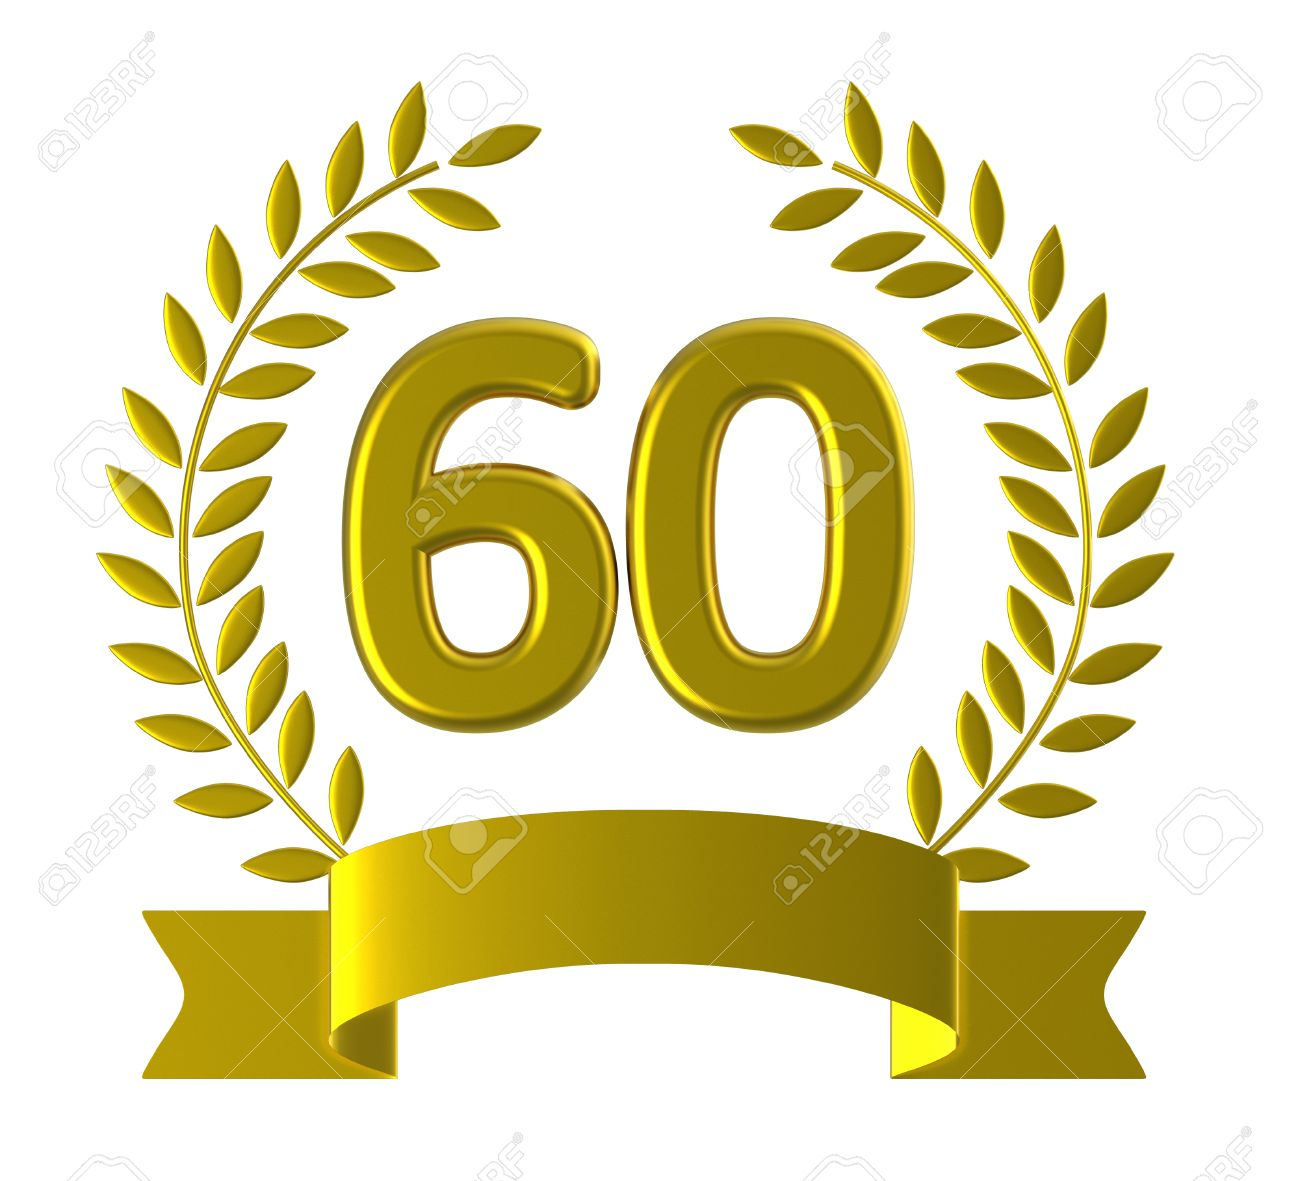 60th Birthday Stock Photos Royalty Free 60th Birthday Images And throughout Free 60th Clipart